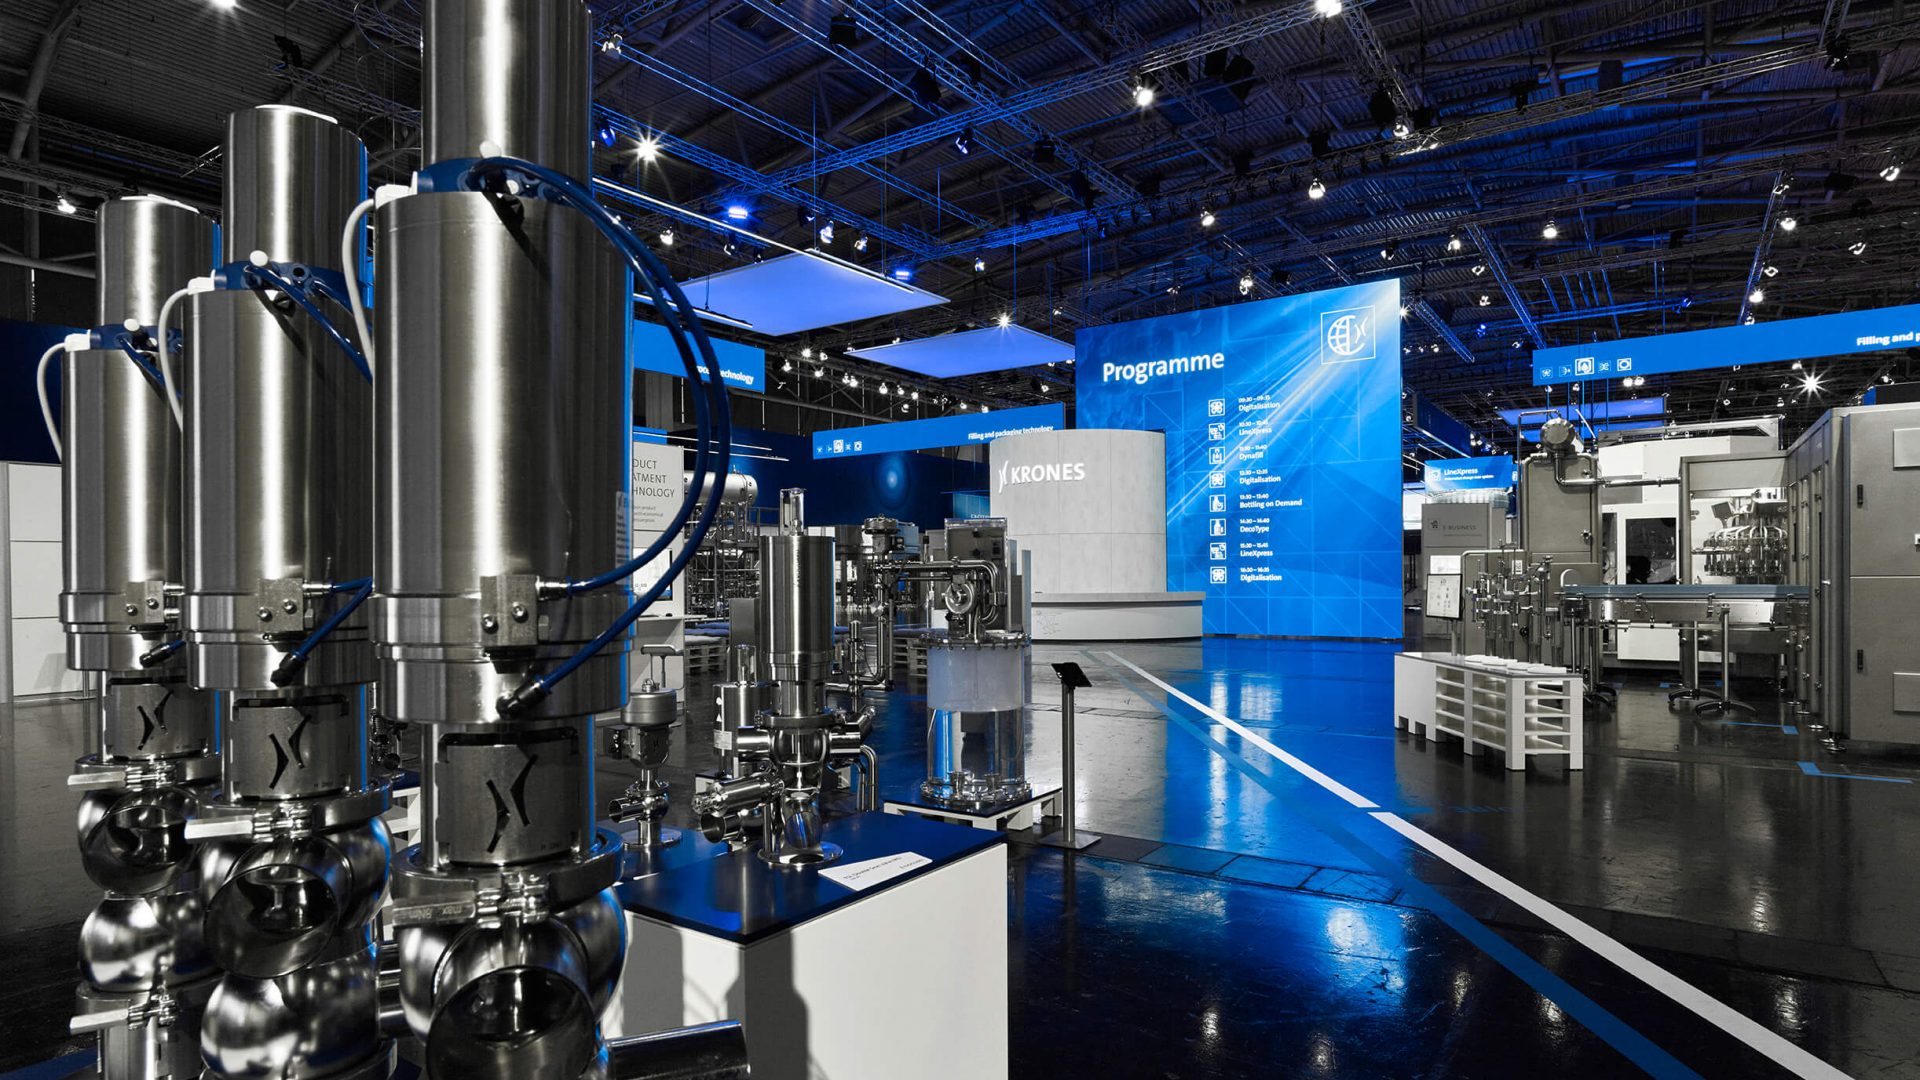 EXHIBITION FOR KRONES AT DRINKTEC 2017